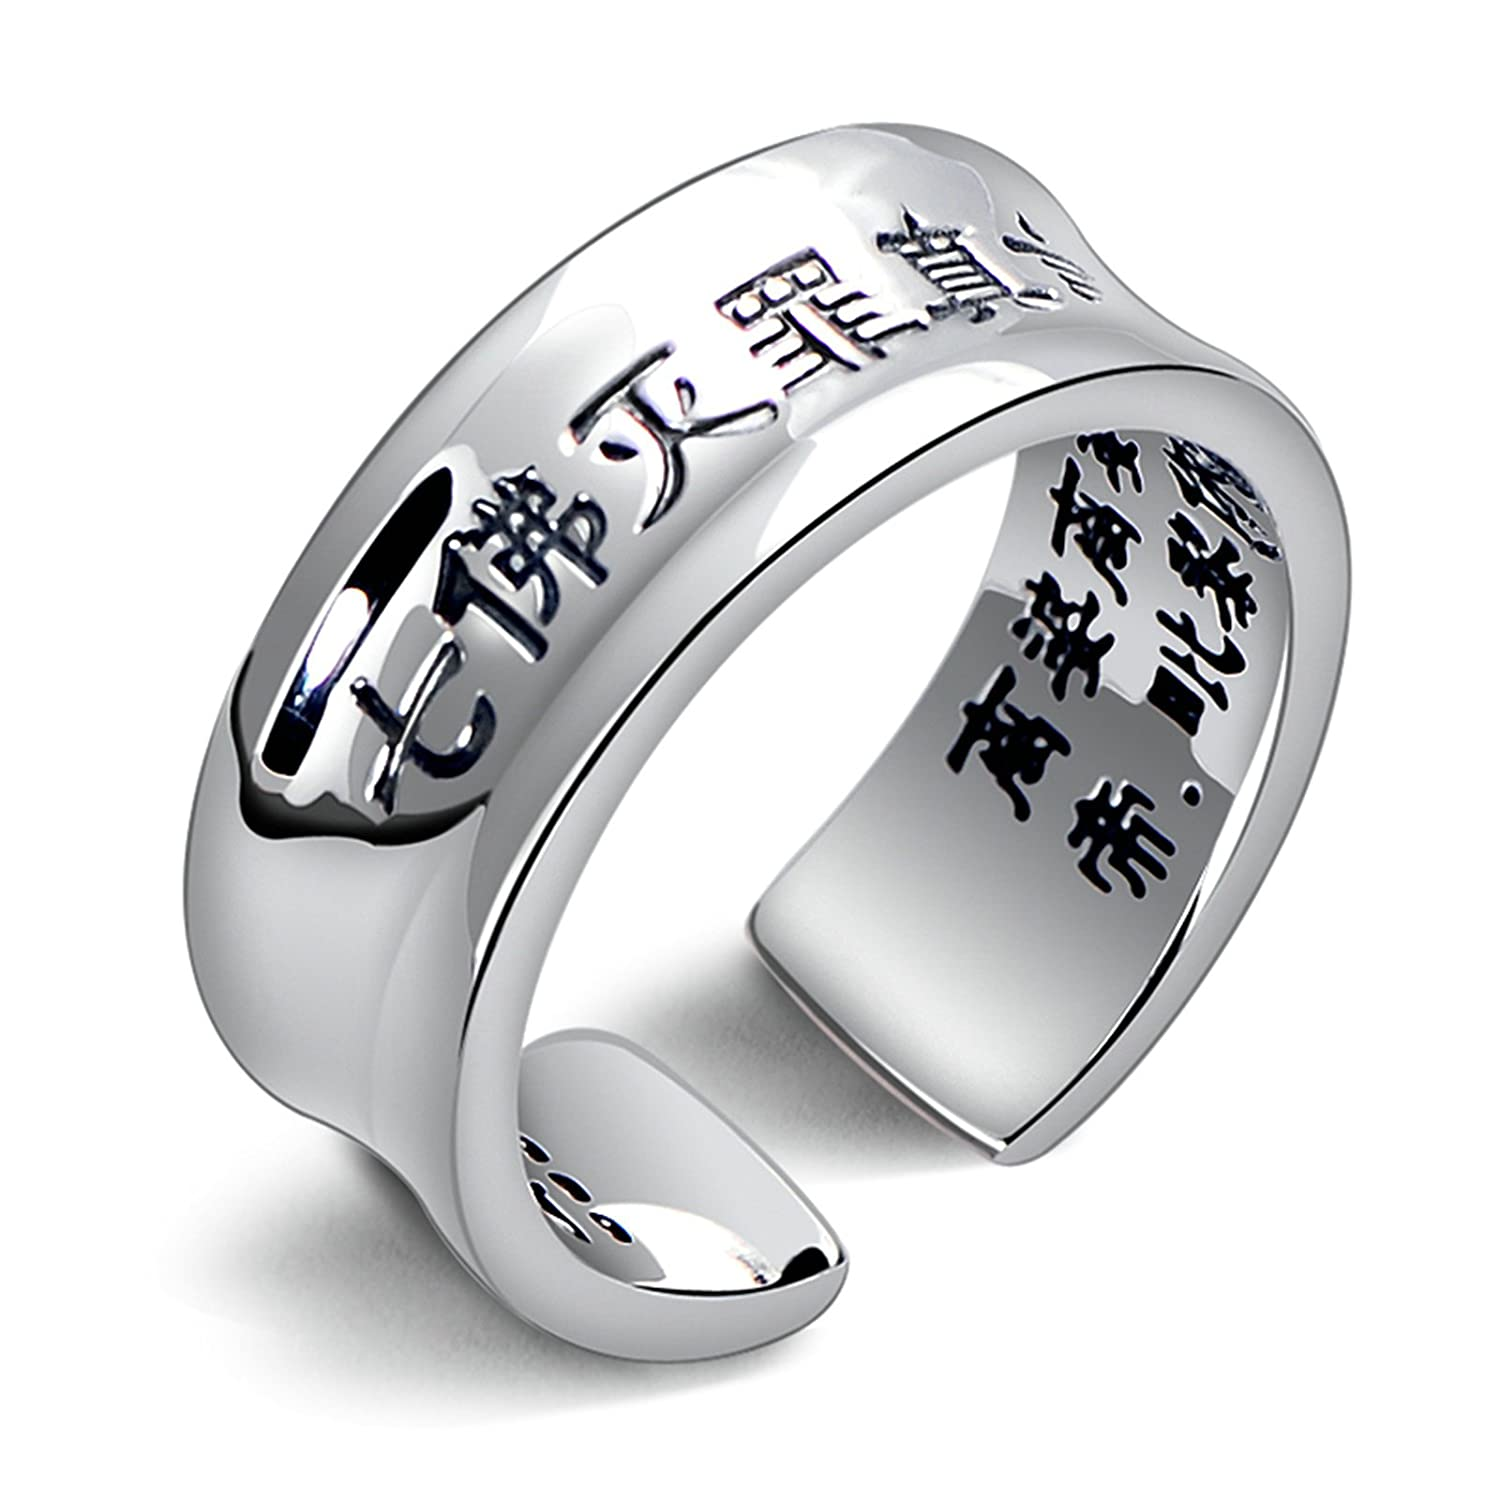 Amdxd Jewelry Sterling Silver Wedding Rings For Women Chinese Buddhist Mantra Band Size 5 To 75amazon: Chinese Man Wedding Band At Websimilar.org